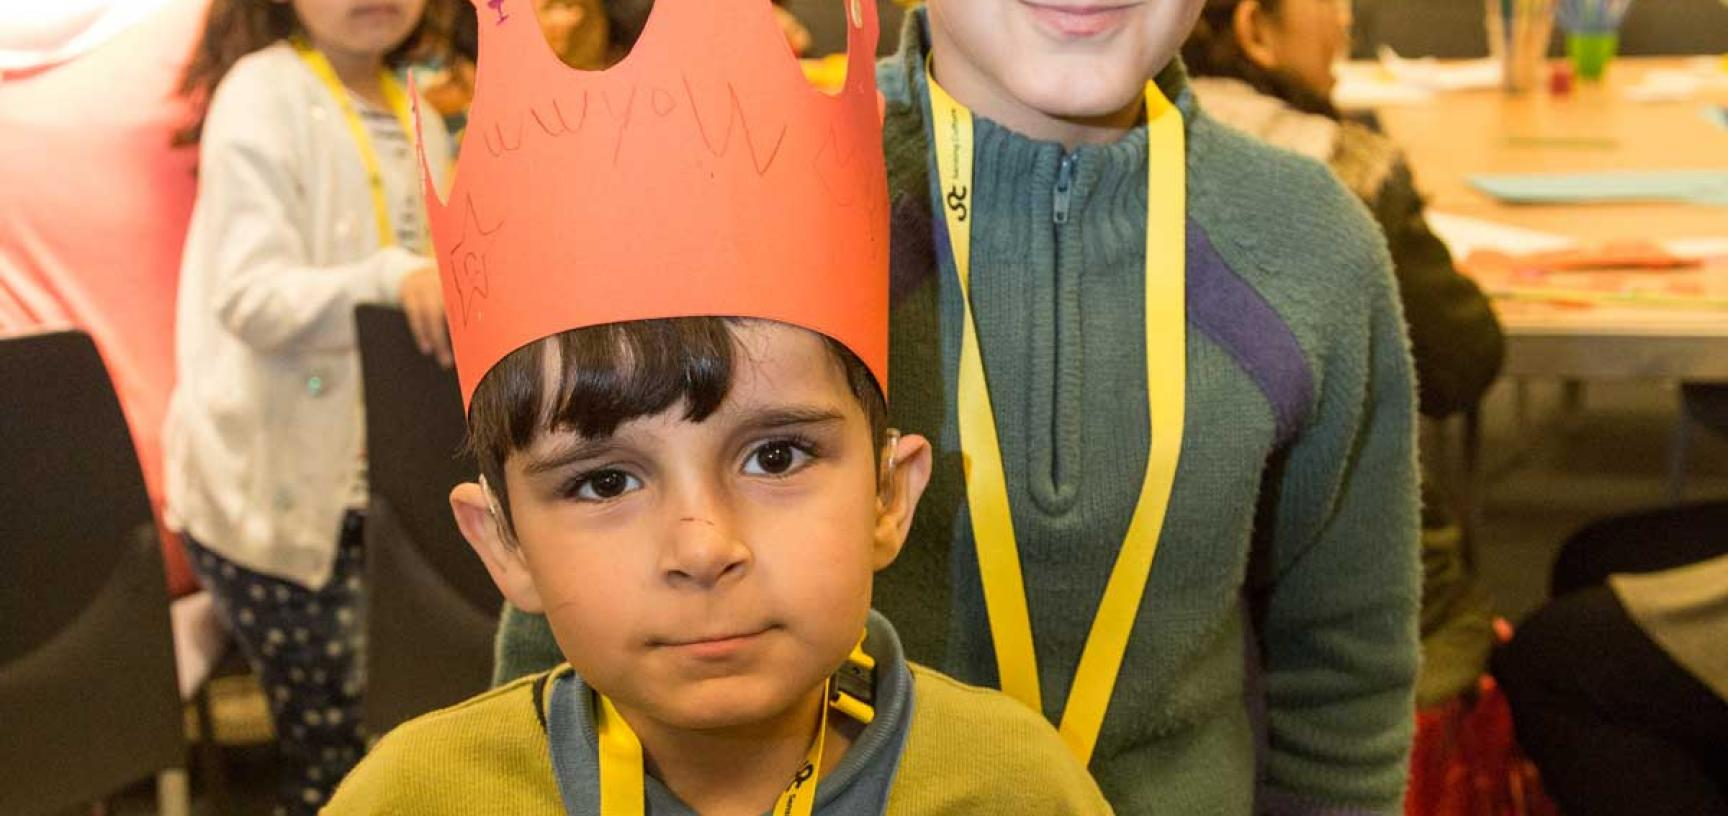 two boys standing, wearing crowns they have made